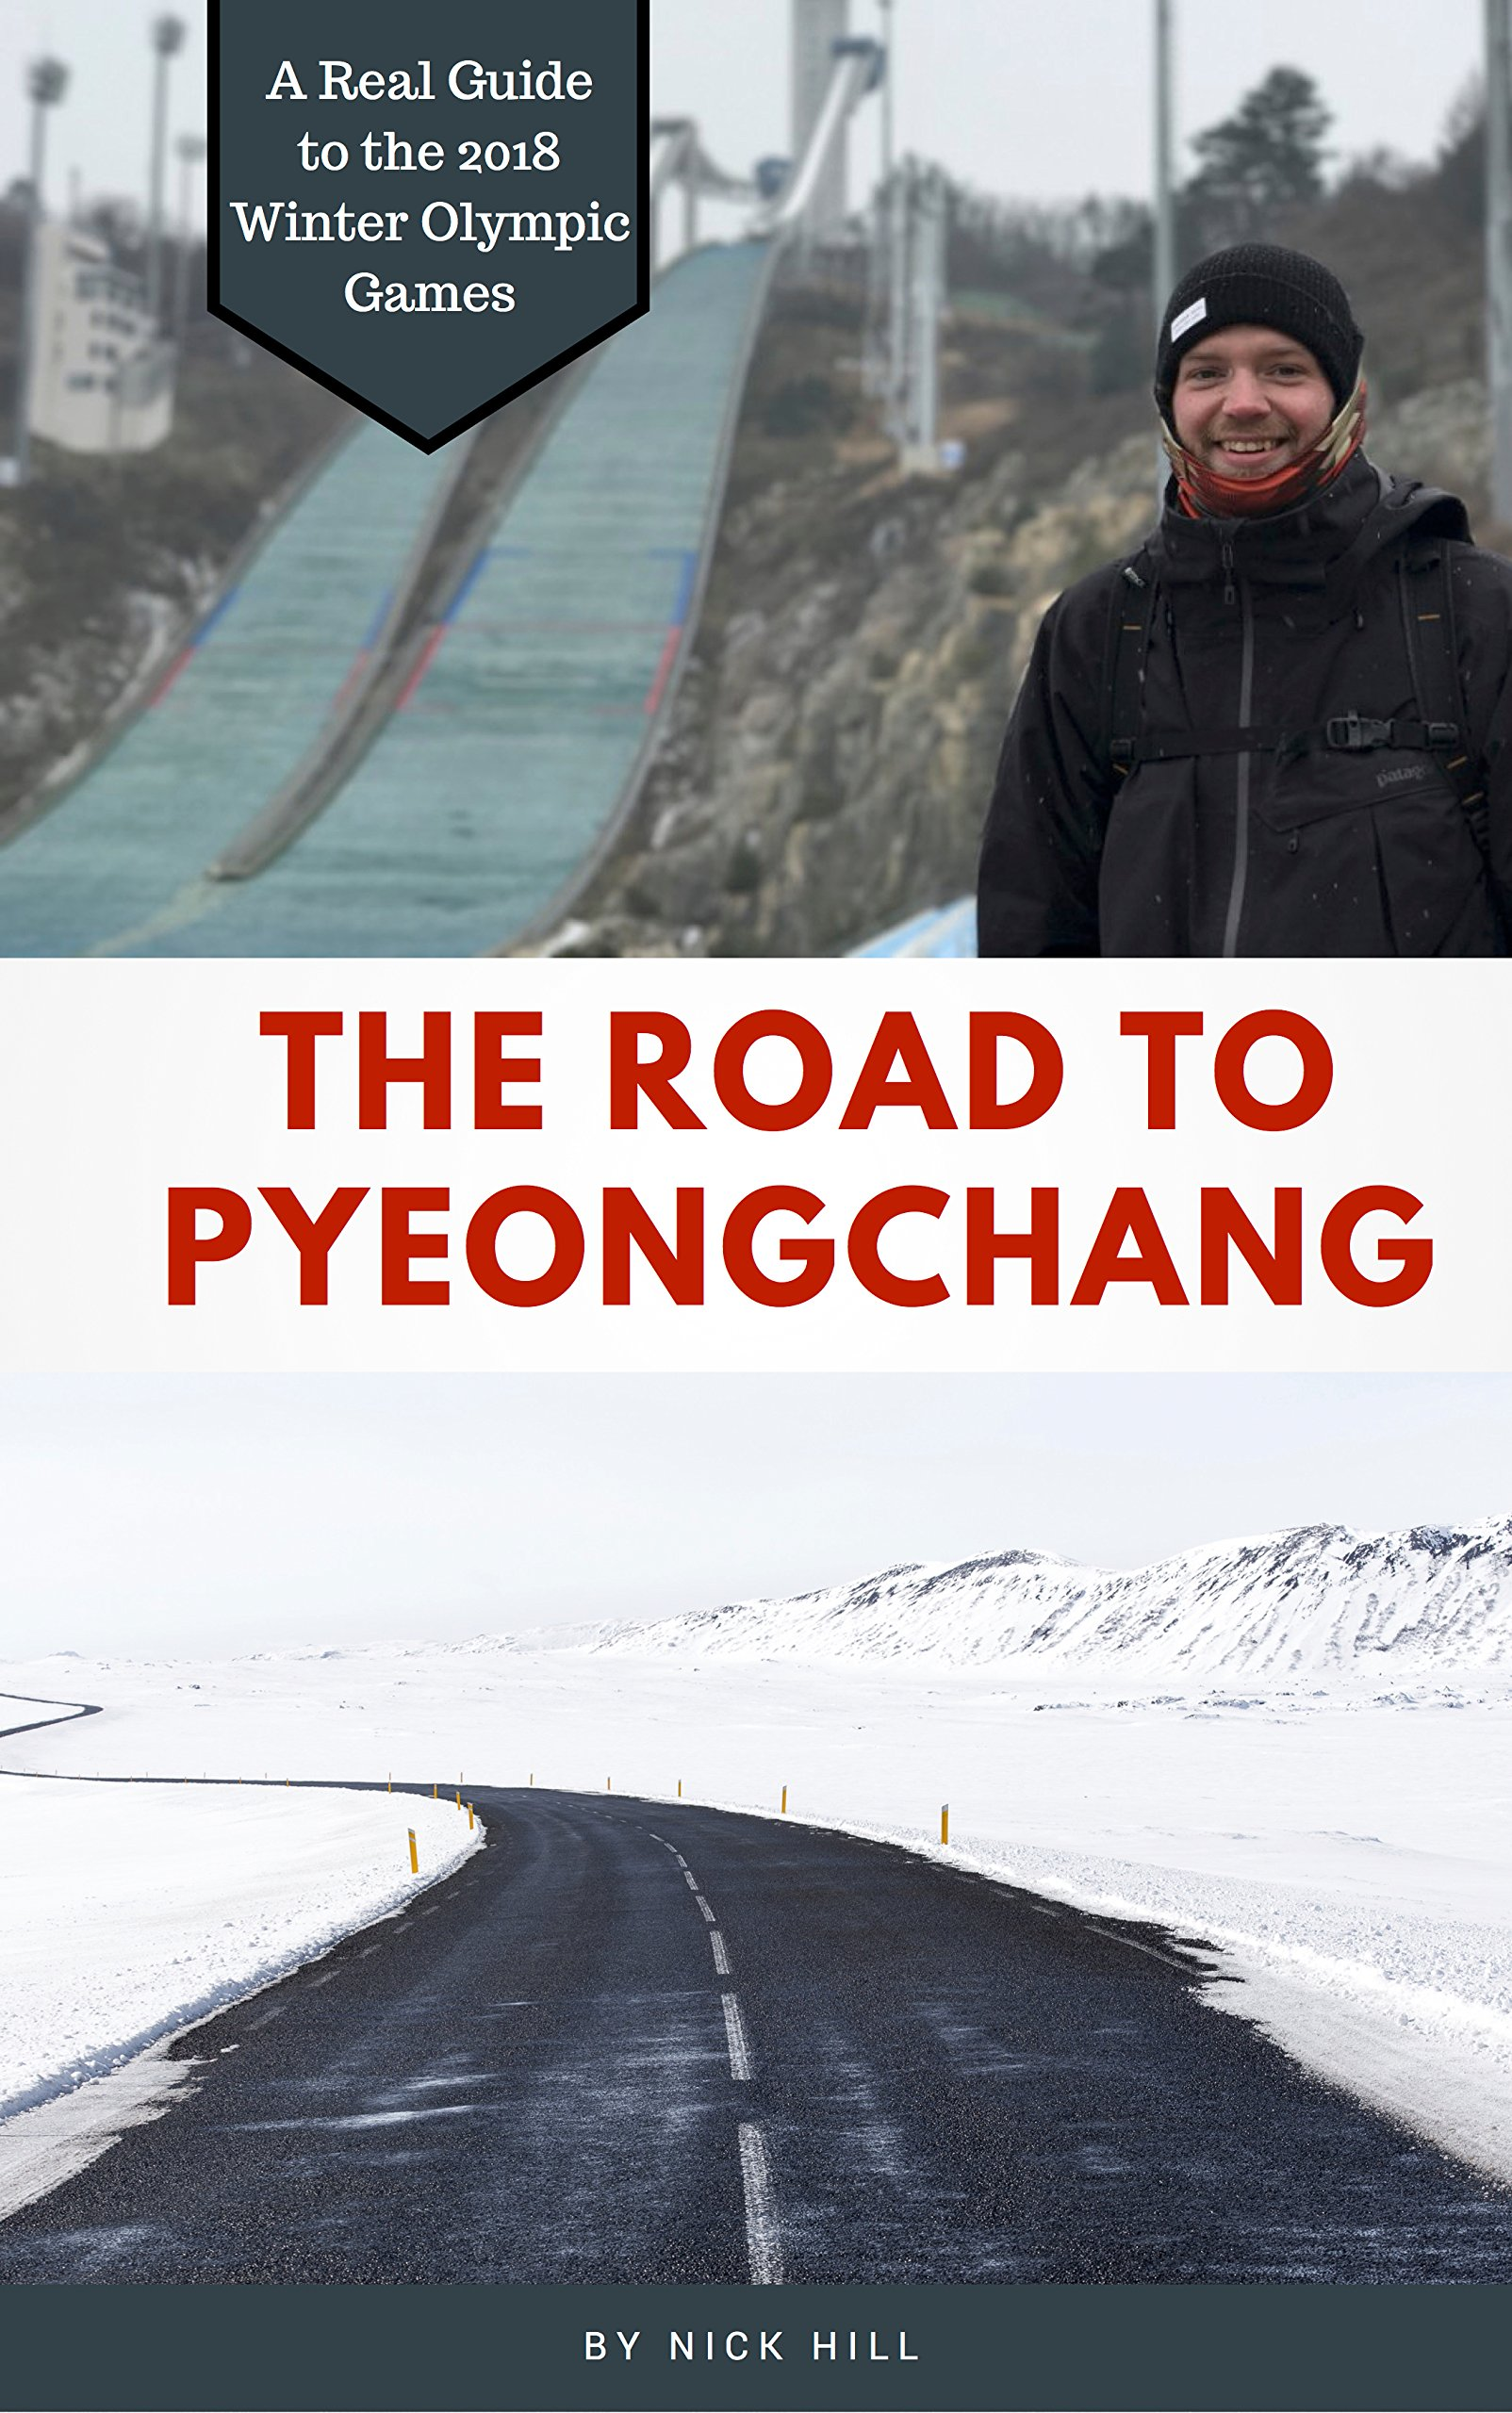 The Road To PyeongChang: A Real Guide to the 2018 Winter Olympic Games (English Edition)